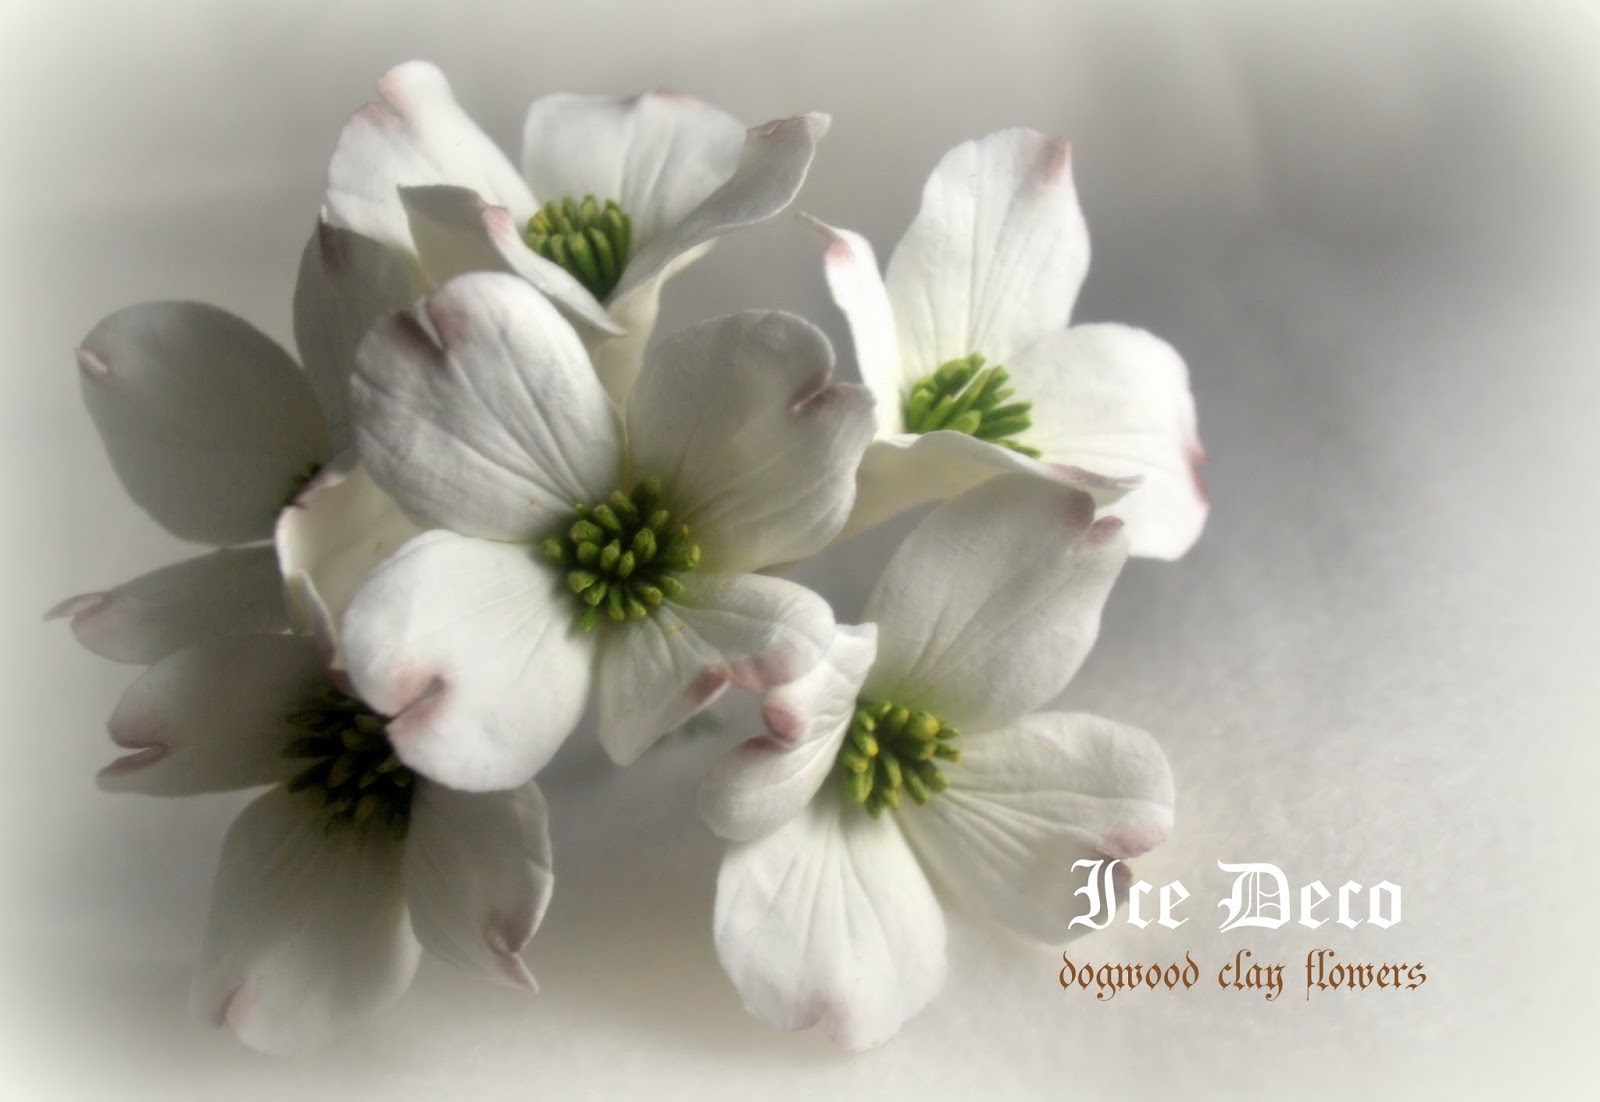 Ice deco dogwood deco clay flowers dogwood deco clay flowers izmirmasajfo Images